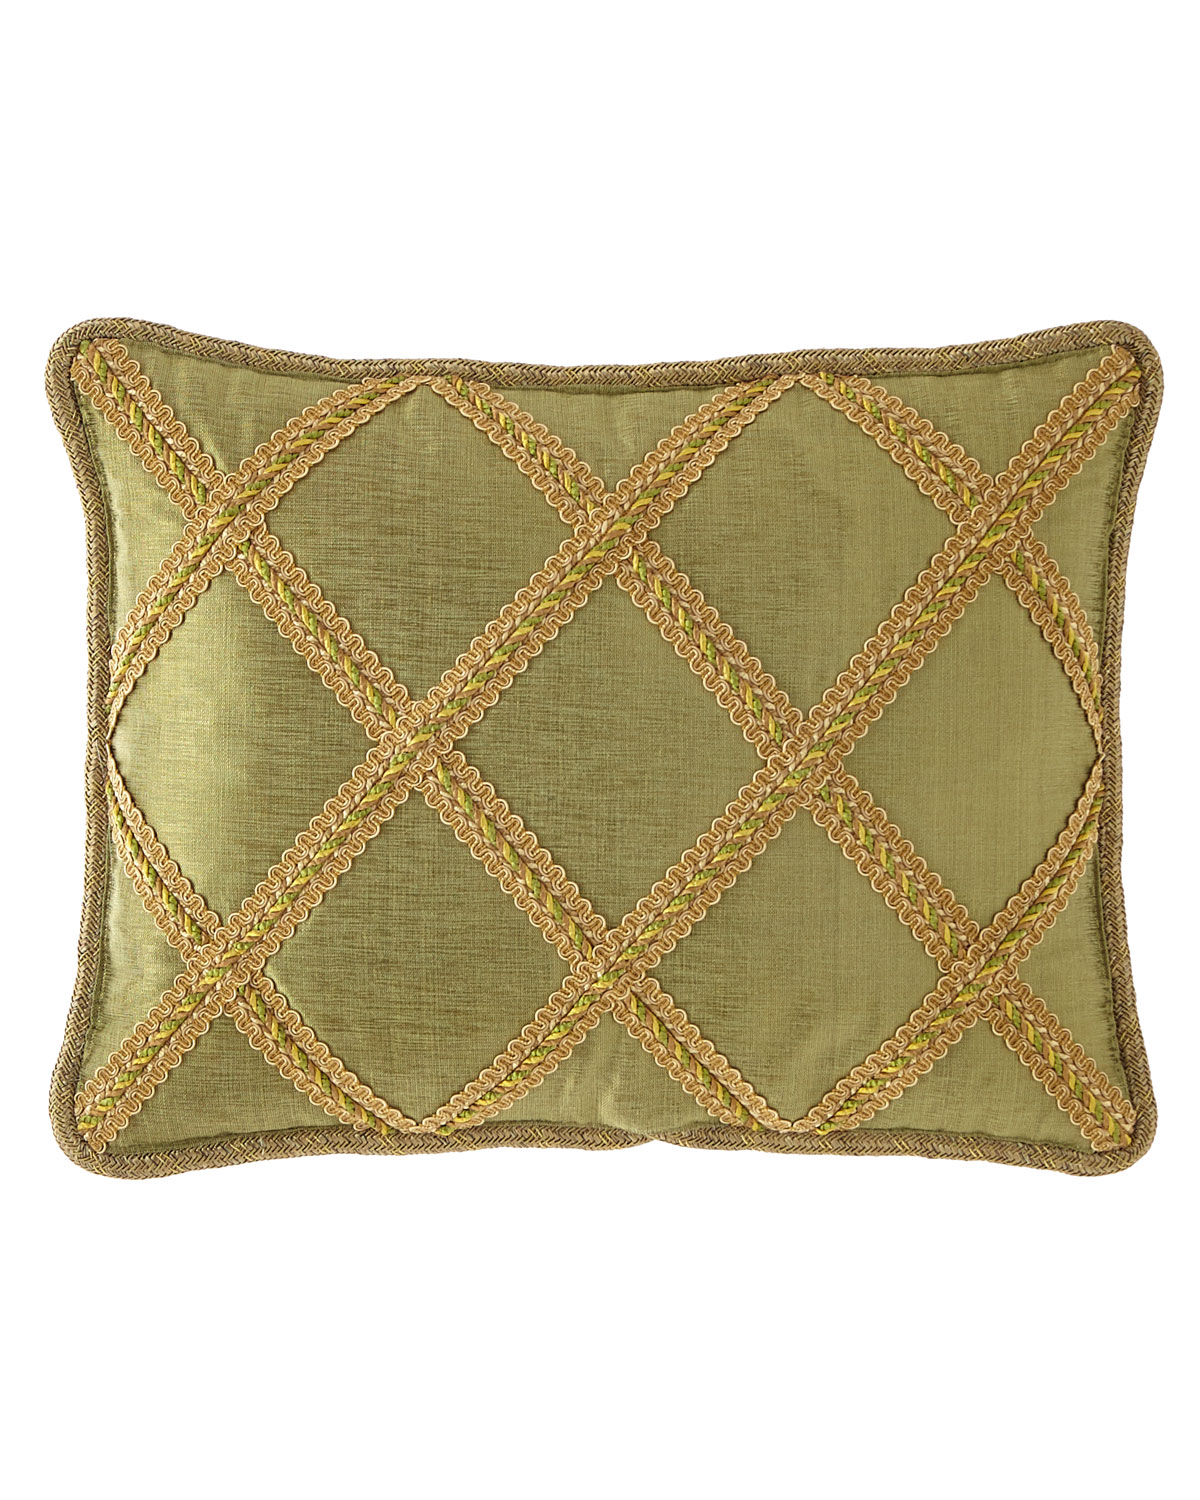 Dian Austin Couture Home Botanical Lattice Oblong Pillow